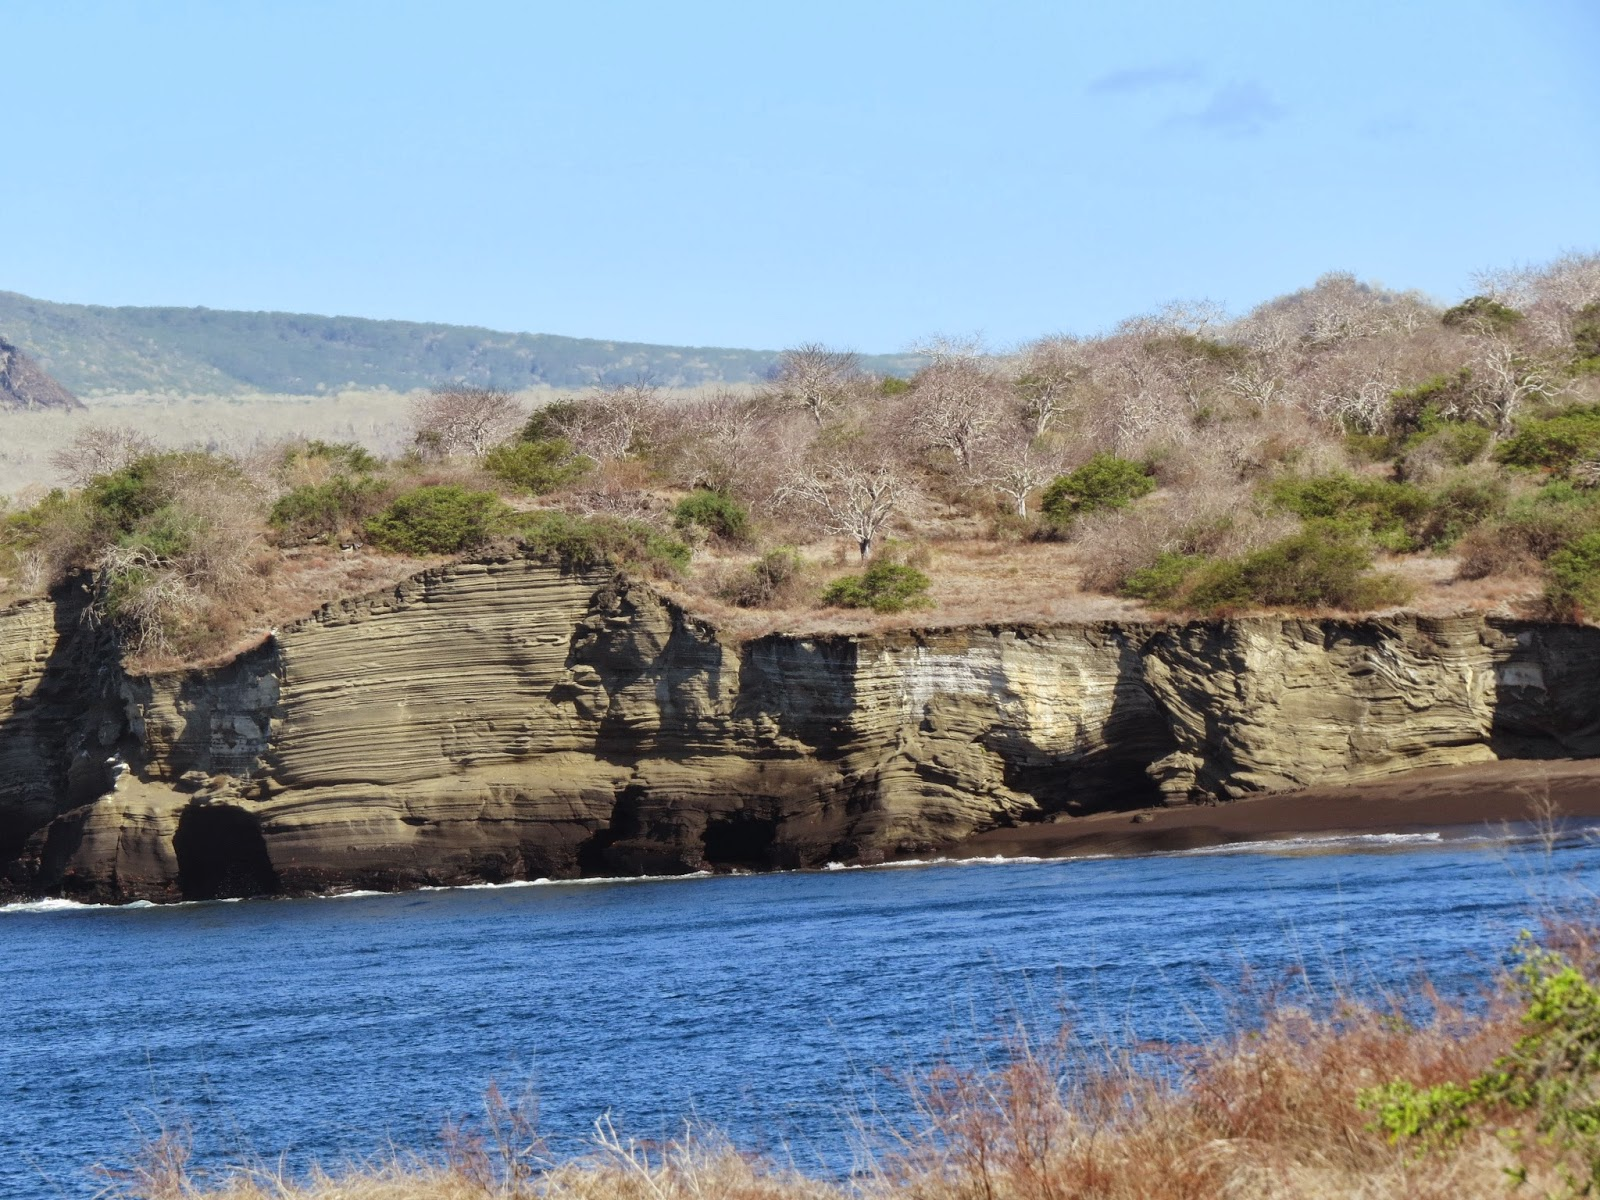 Galapagos Islands Volcanic cliffs